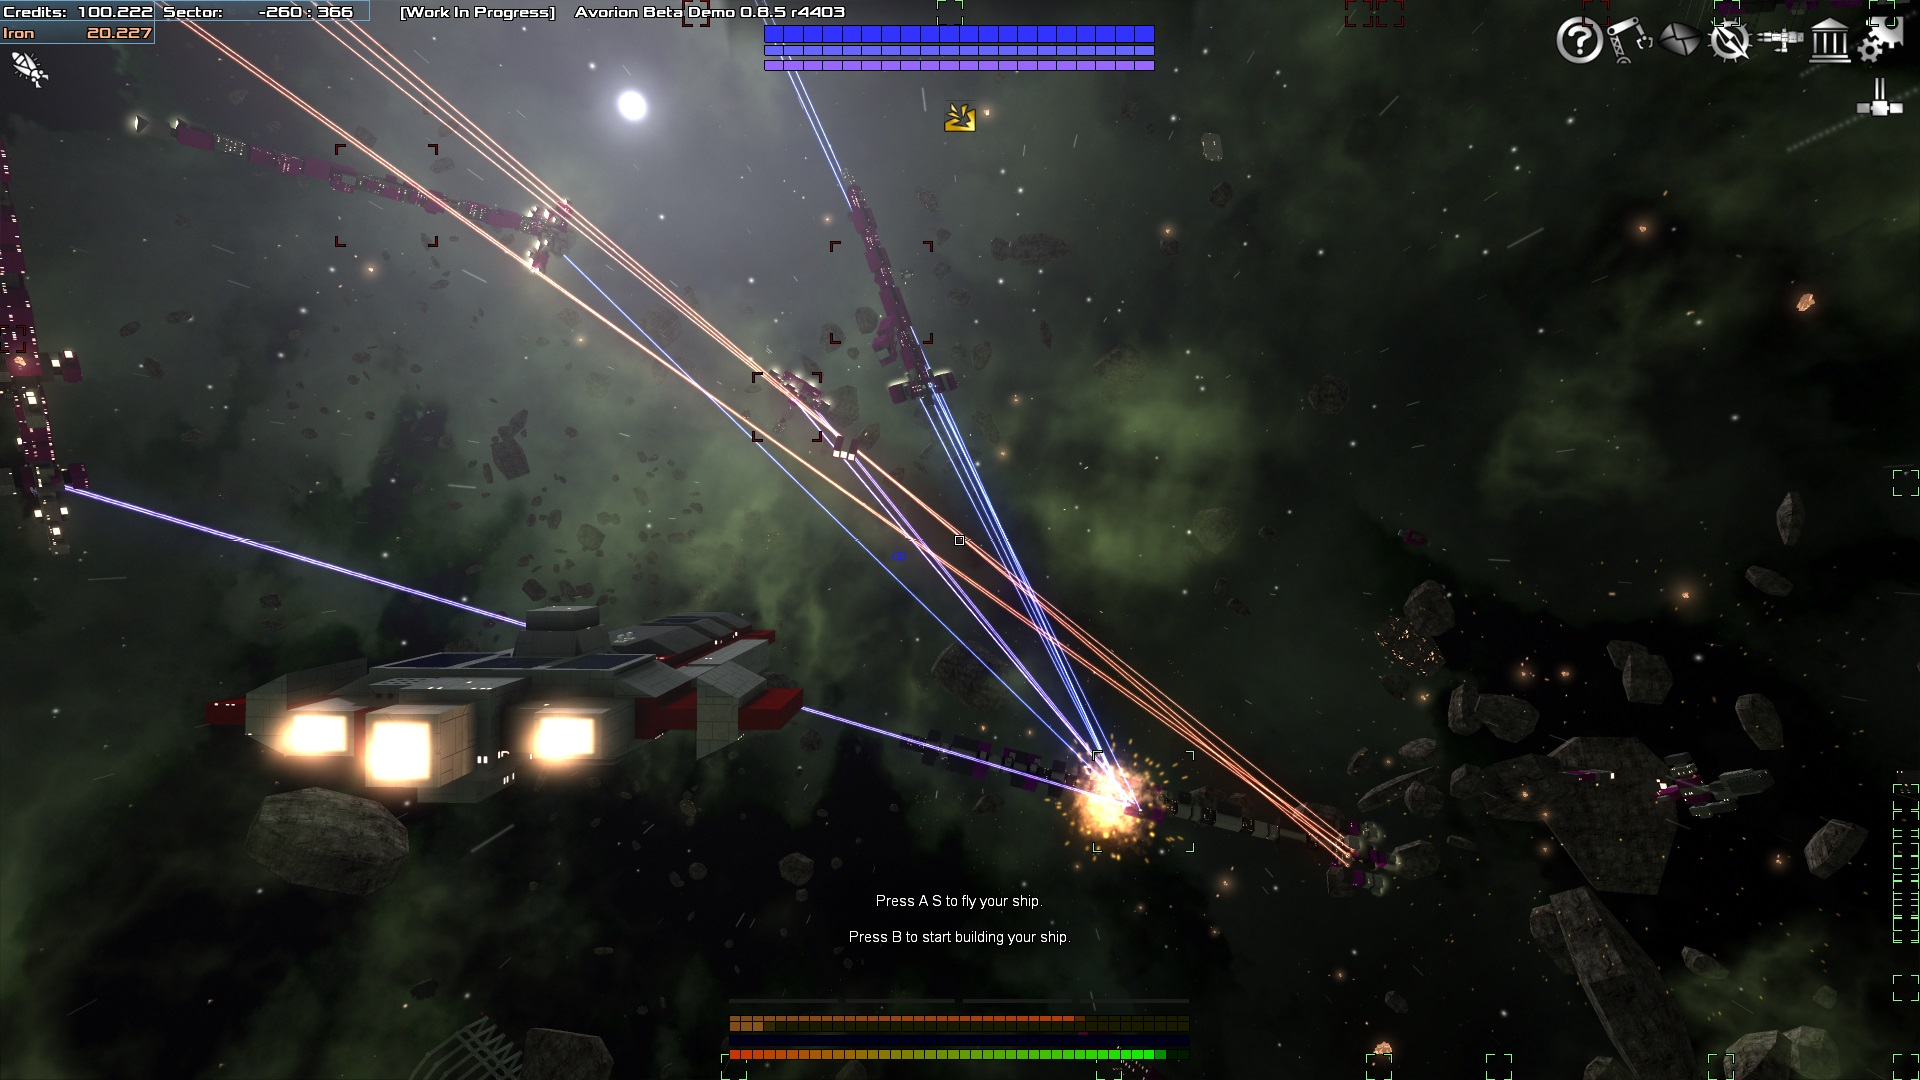 Avorion's latest update features more combat and a faster paced gameplay